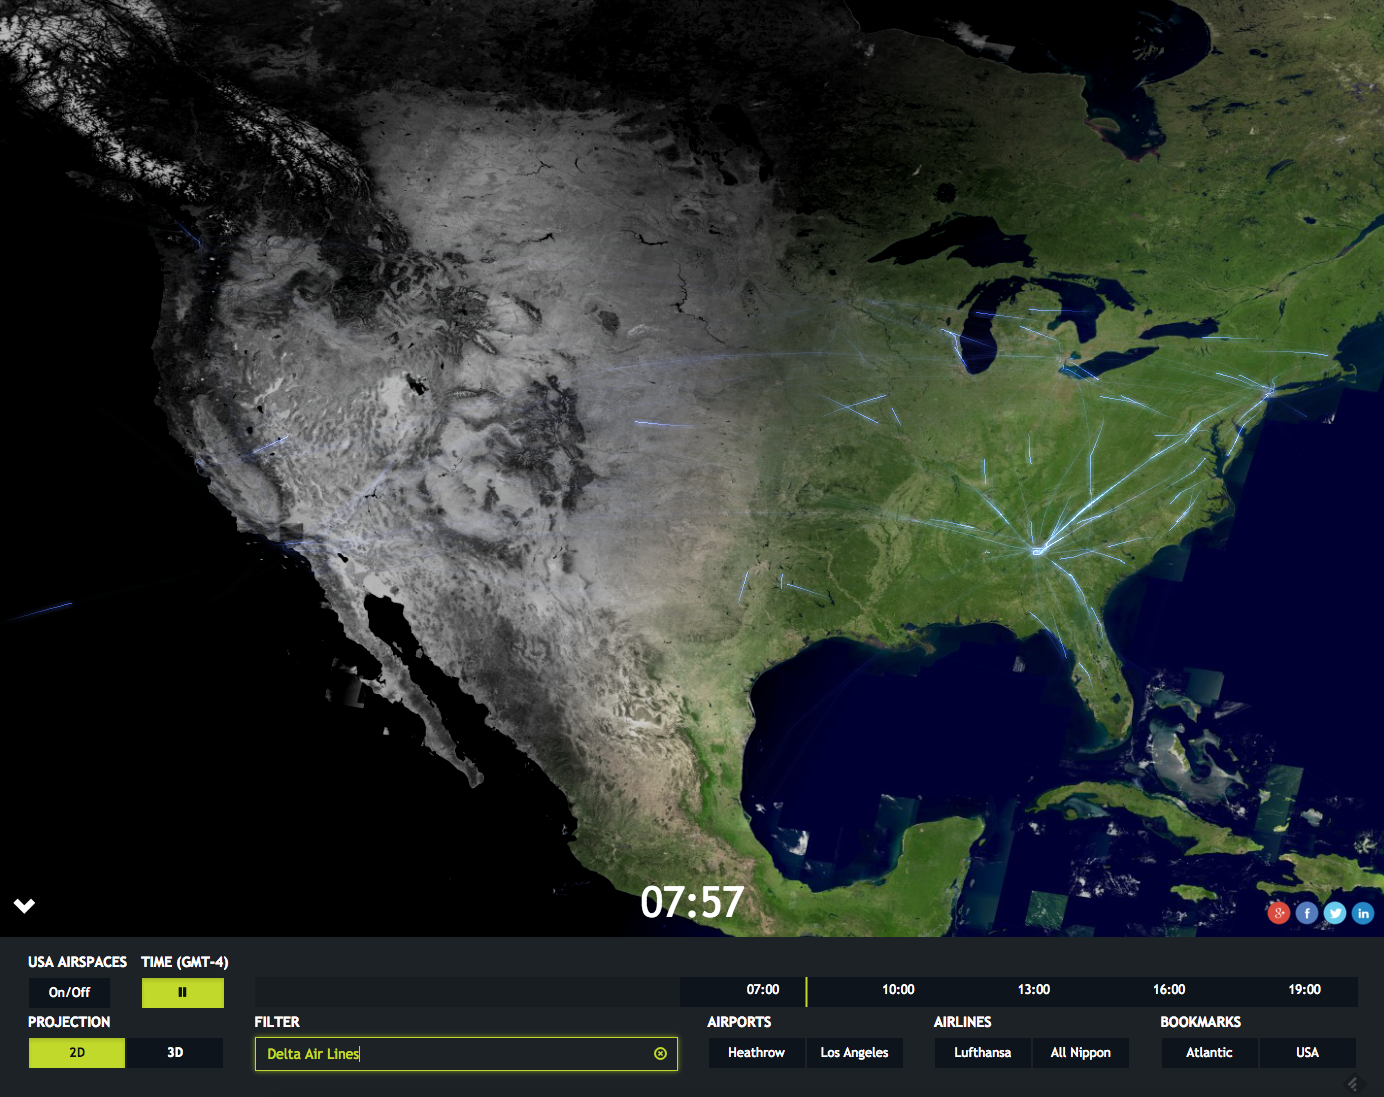 The Luciad web app all you to interact with 24 hours of actual flight data